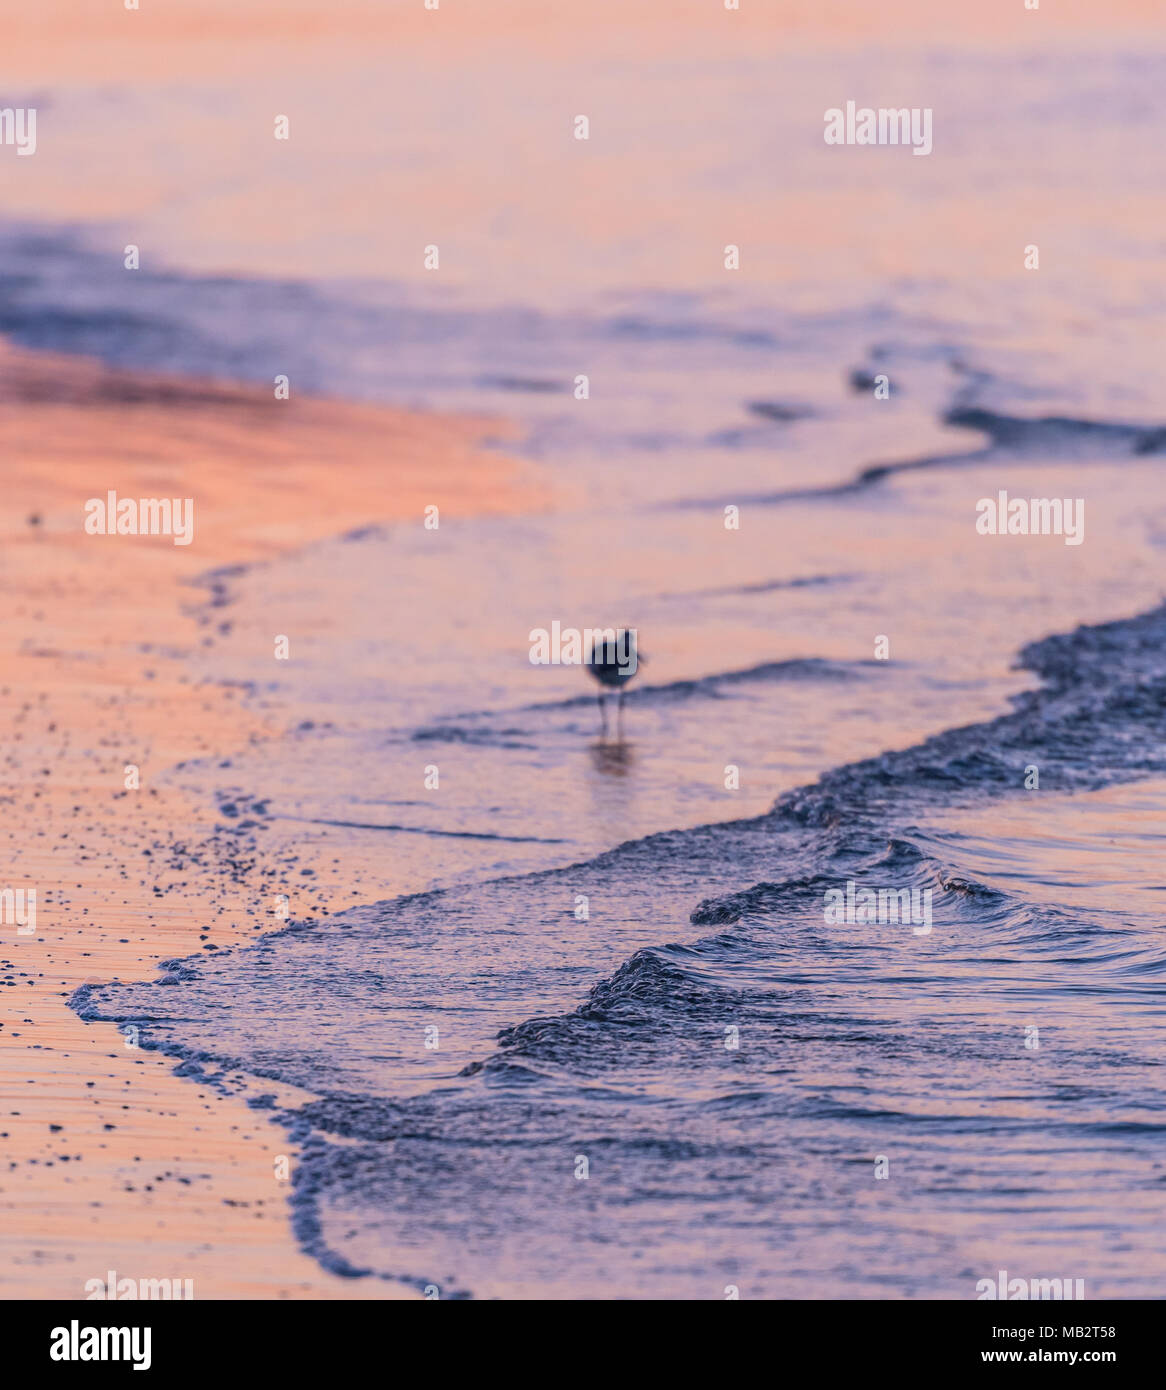 Waves Gently Lap the Shore While a Bird Feeds in early morning light - Stock Image